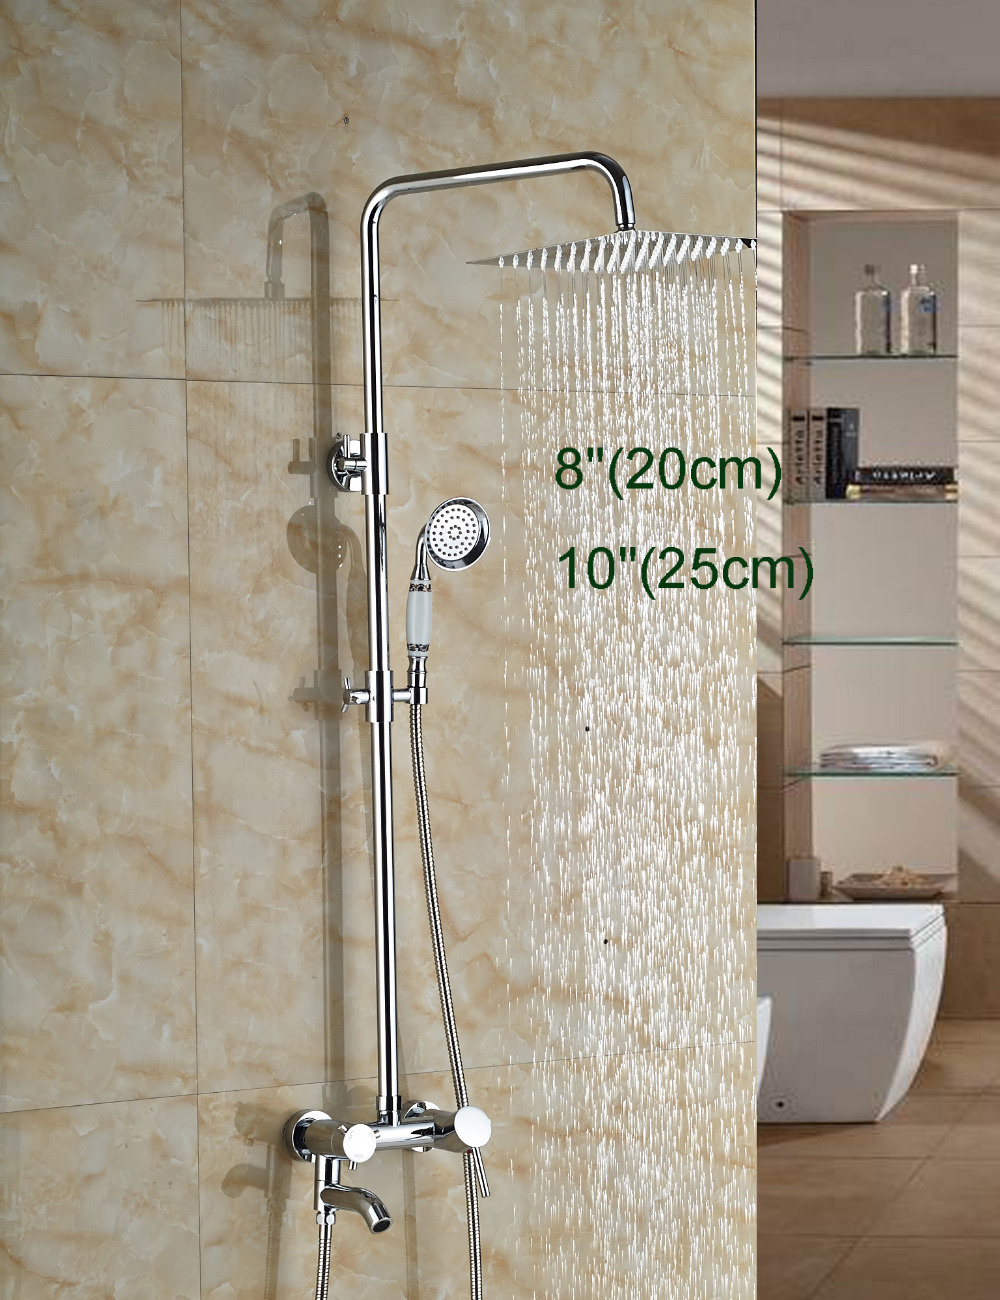 Wholesale And Retail Solid Brass Chrome Finish Rain Shower Faucet Tub Spout Swivel Spout Cold Hot Mixer W/ Hand Shower led spout swivel spout kitchen faucet vessel sink mixer tap chrome finish solid brass free shipping hot sale